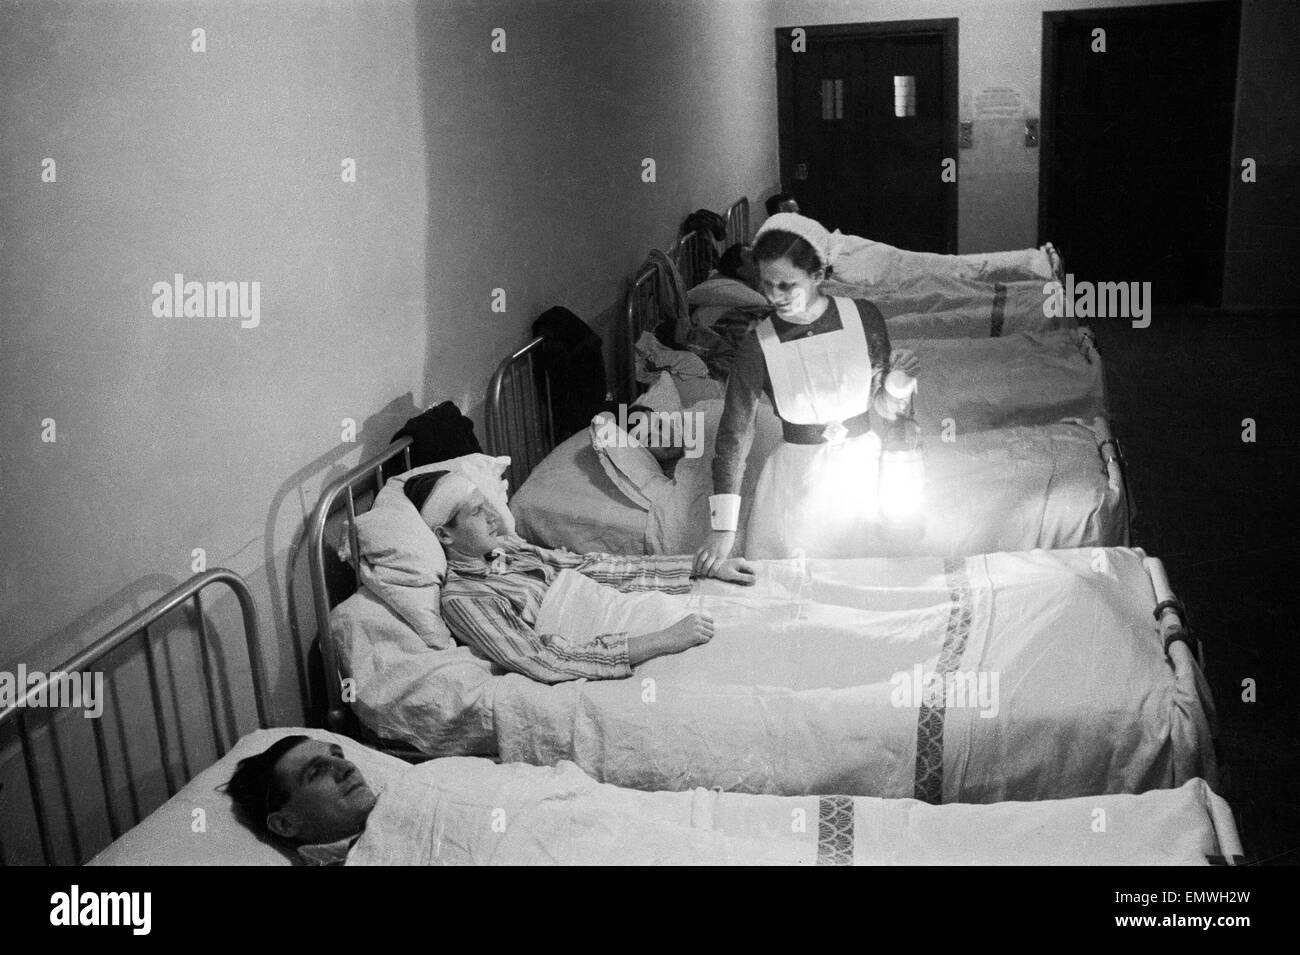 Scenes at Westminster Hospital on christmas Eve 1940. 24th December 1940 - Stock Image